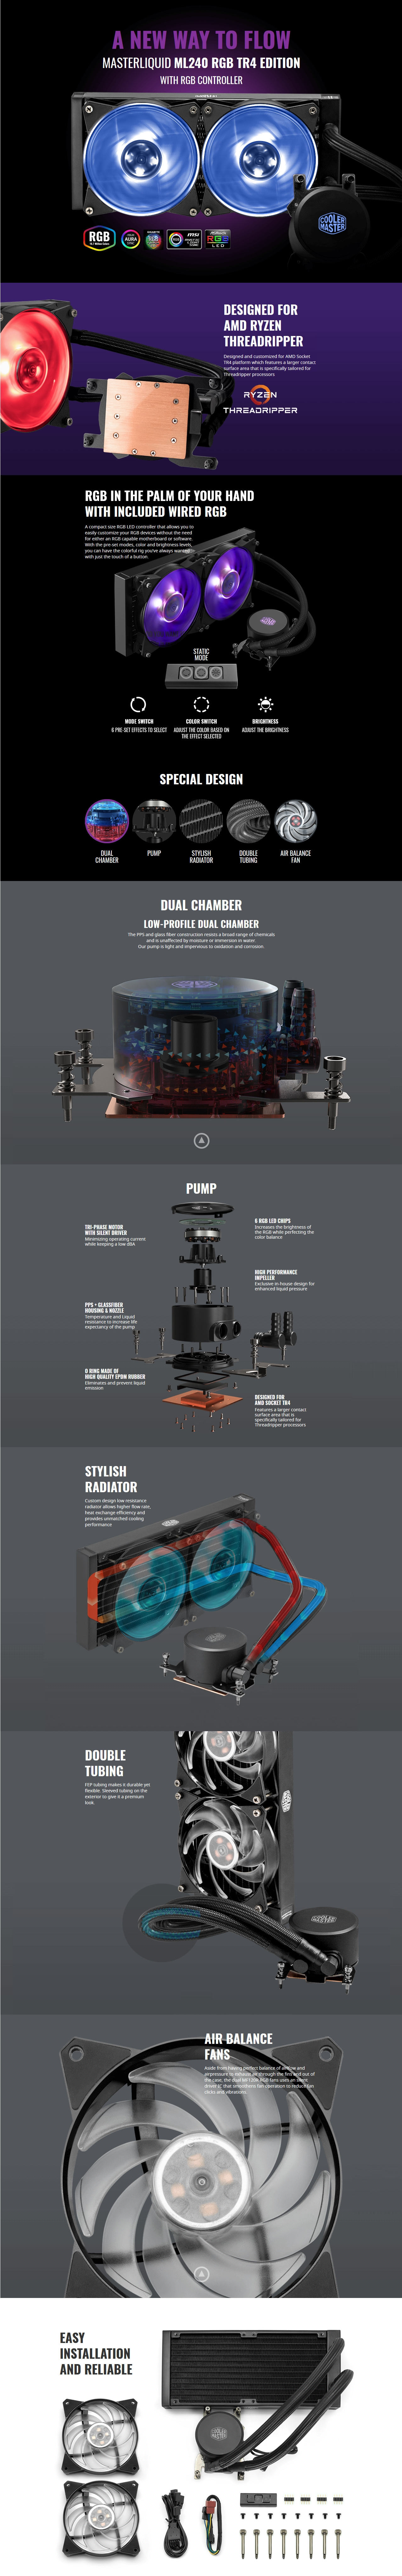 A large marketing image providing additional information about the product Cooler Master MasterLiquid ML240 RGB TR4 Edition AIO Liquid CPU Cooler - Additional alt info not provided